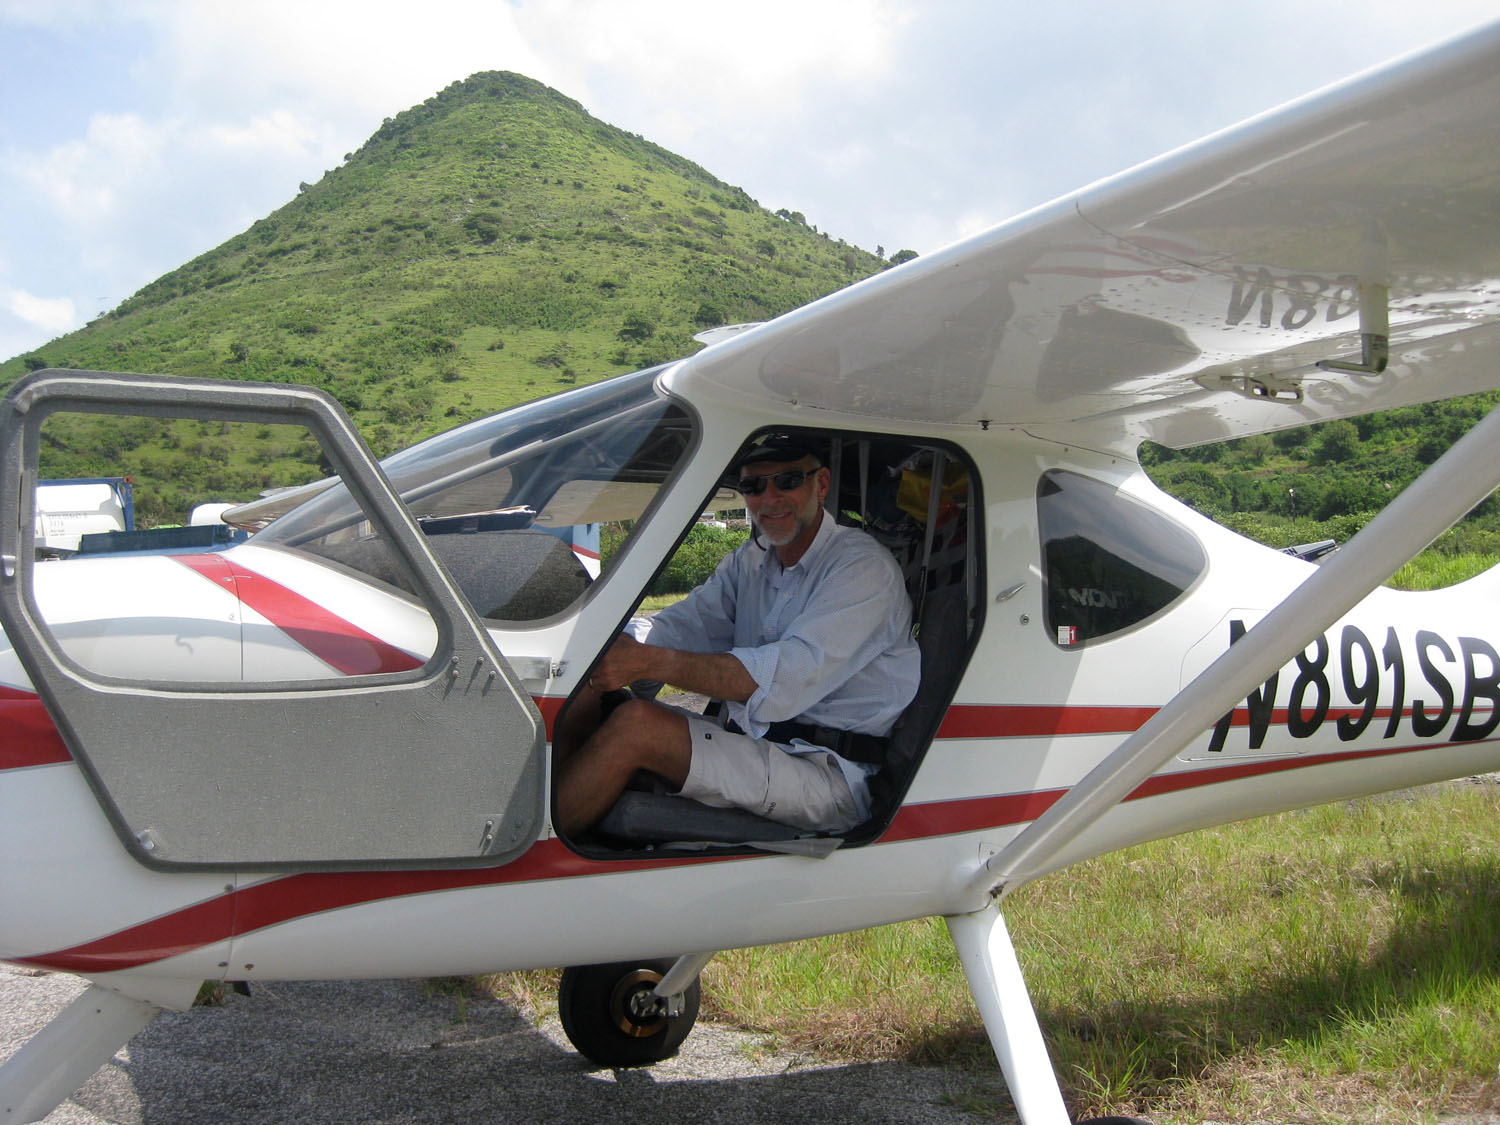 Caribbean flight in a GlaStar